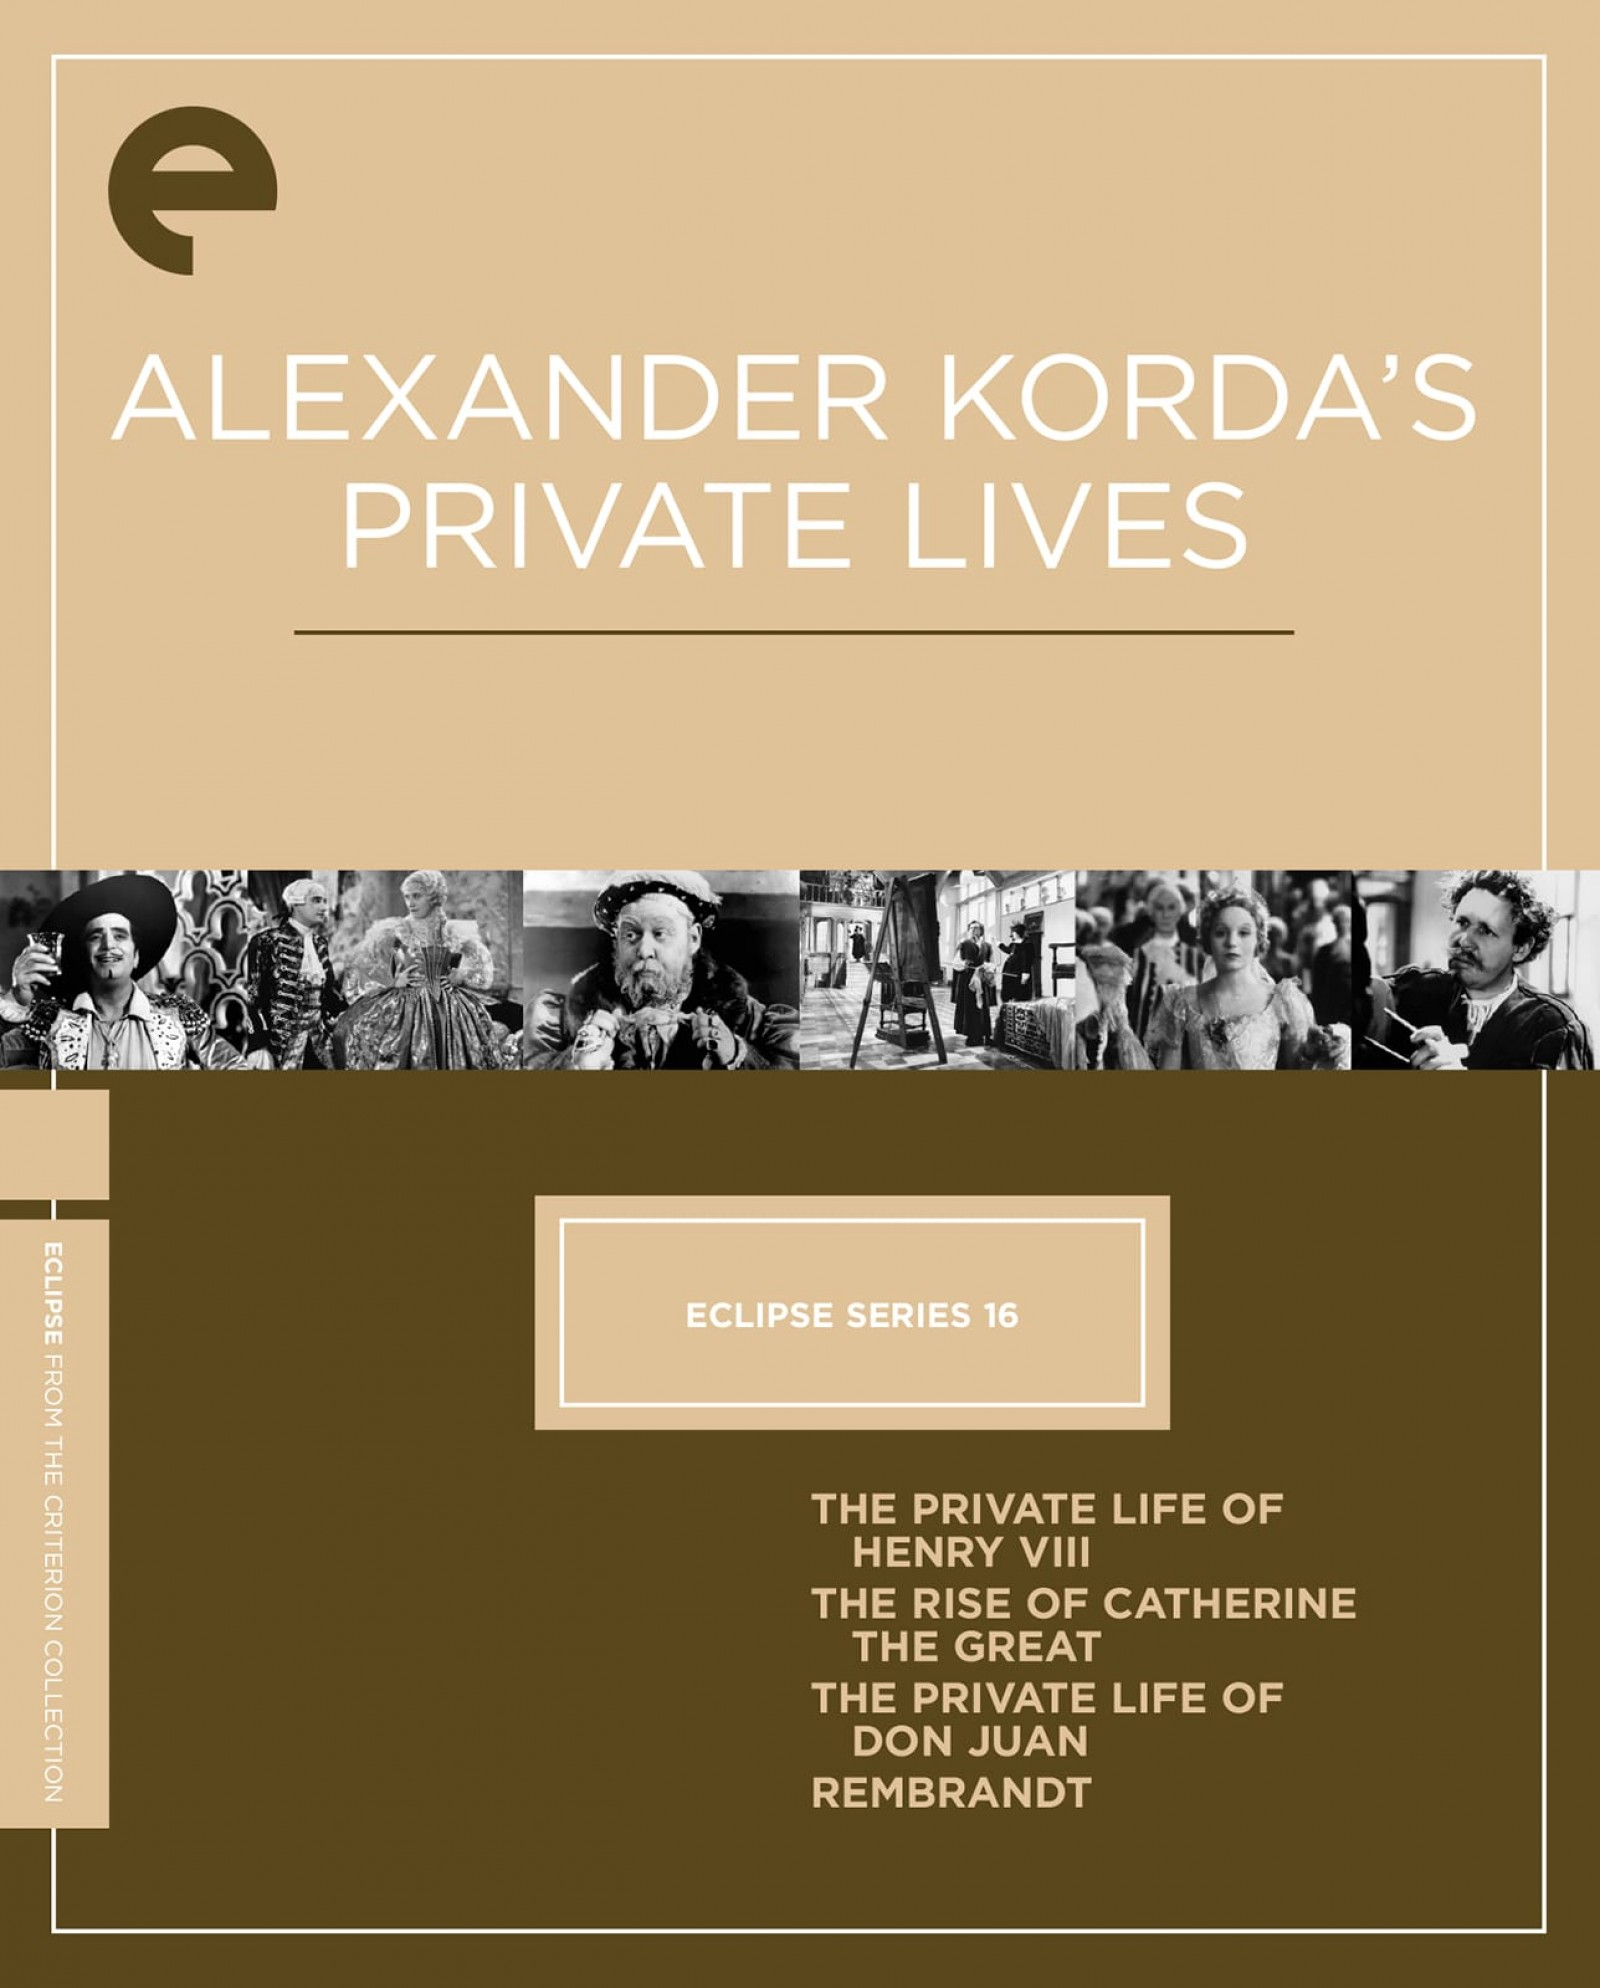 Eclipse Series 16: Alexander Korda's Private Lives